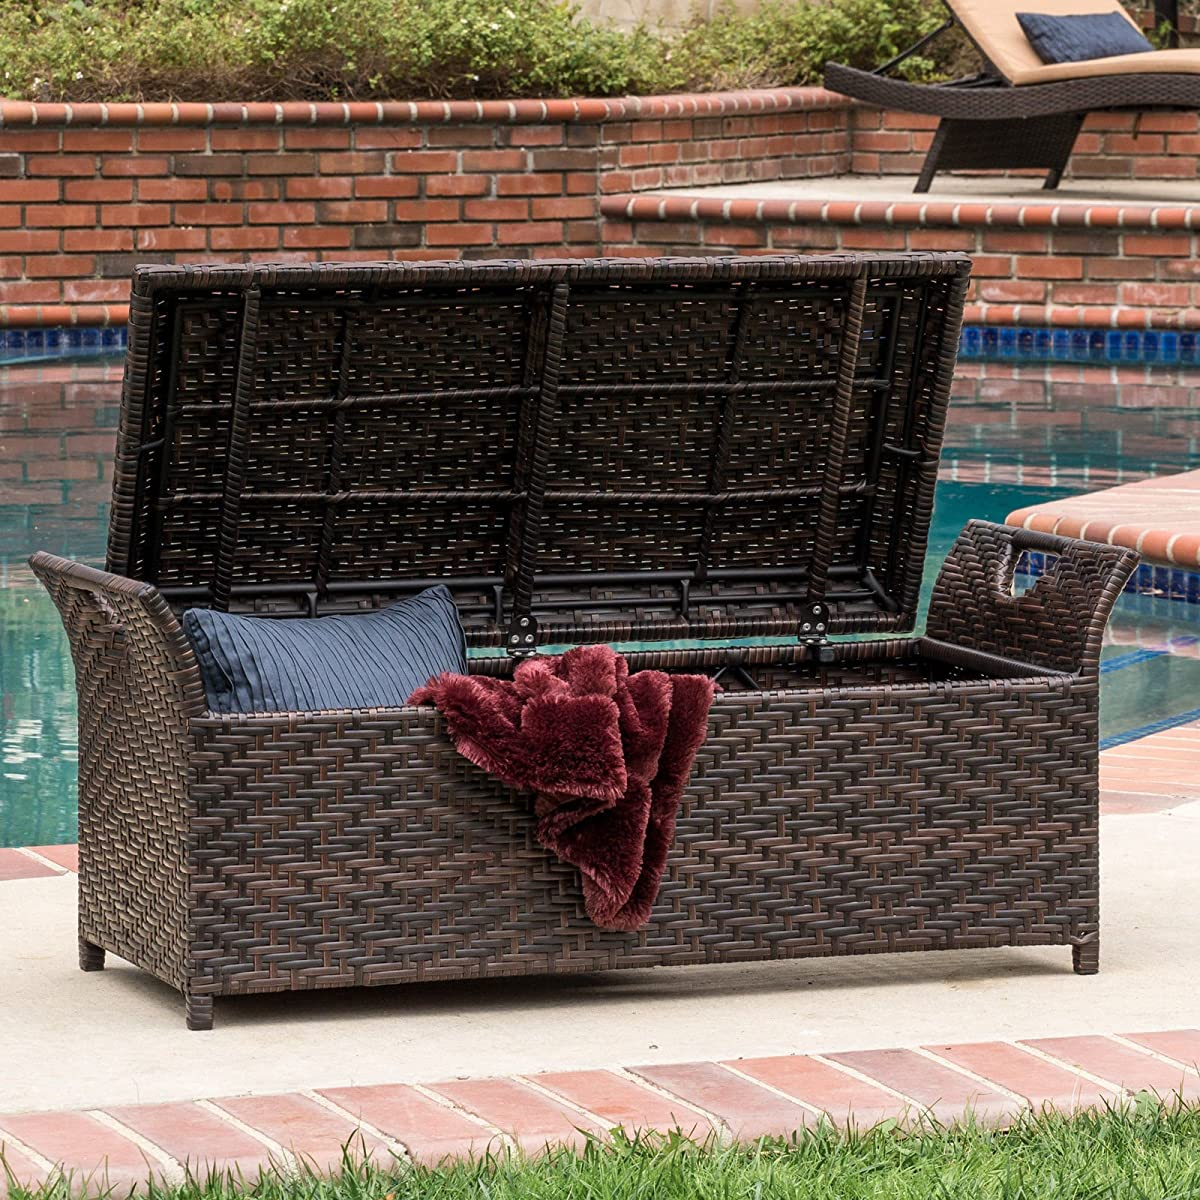 This Outdoor Ottoman Offers Much Storage. The Outdoor Storage Bench Provides an Extra Seating Guaranteed. Lift the Lid of This Amazing Bench to Reveal a Roomy Storage Area for Cushions Gardening Tools